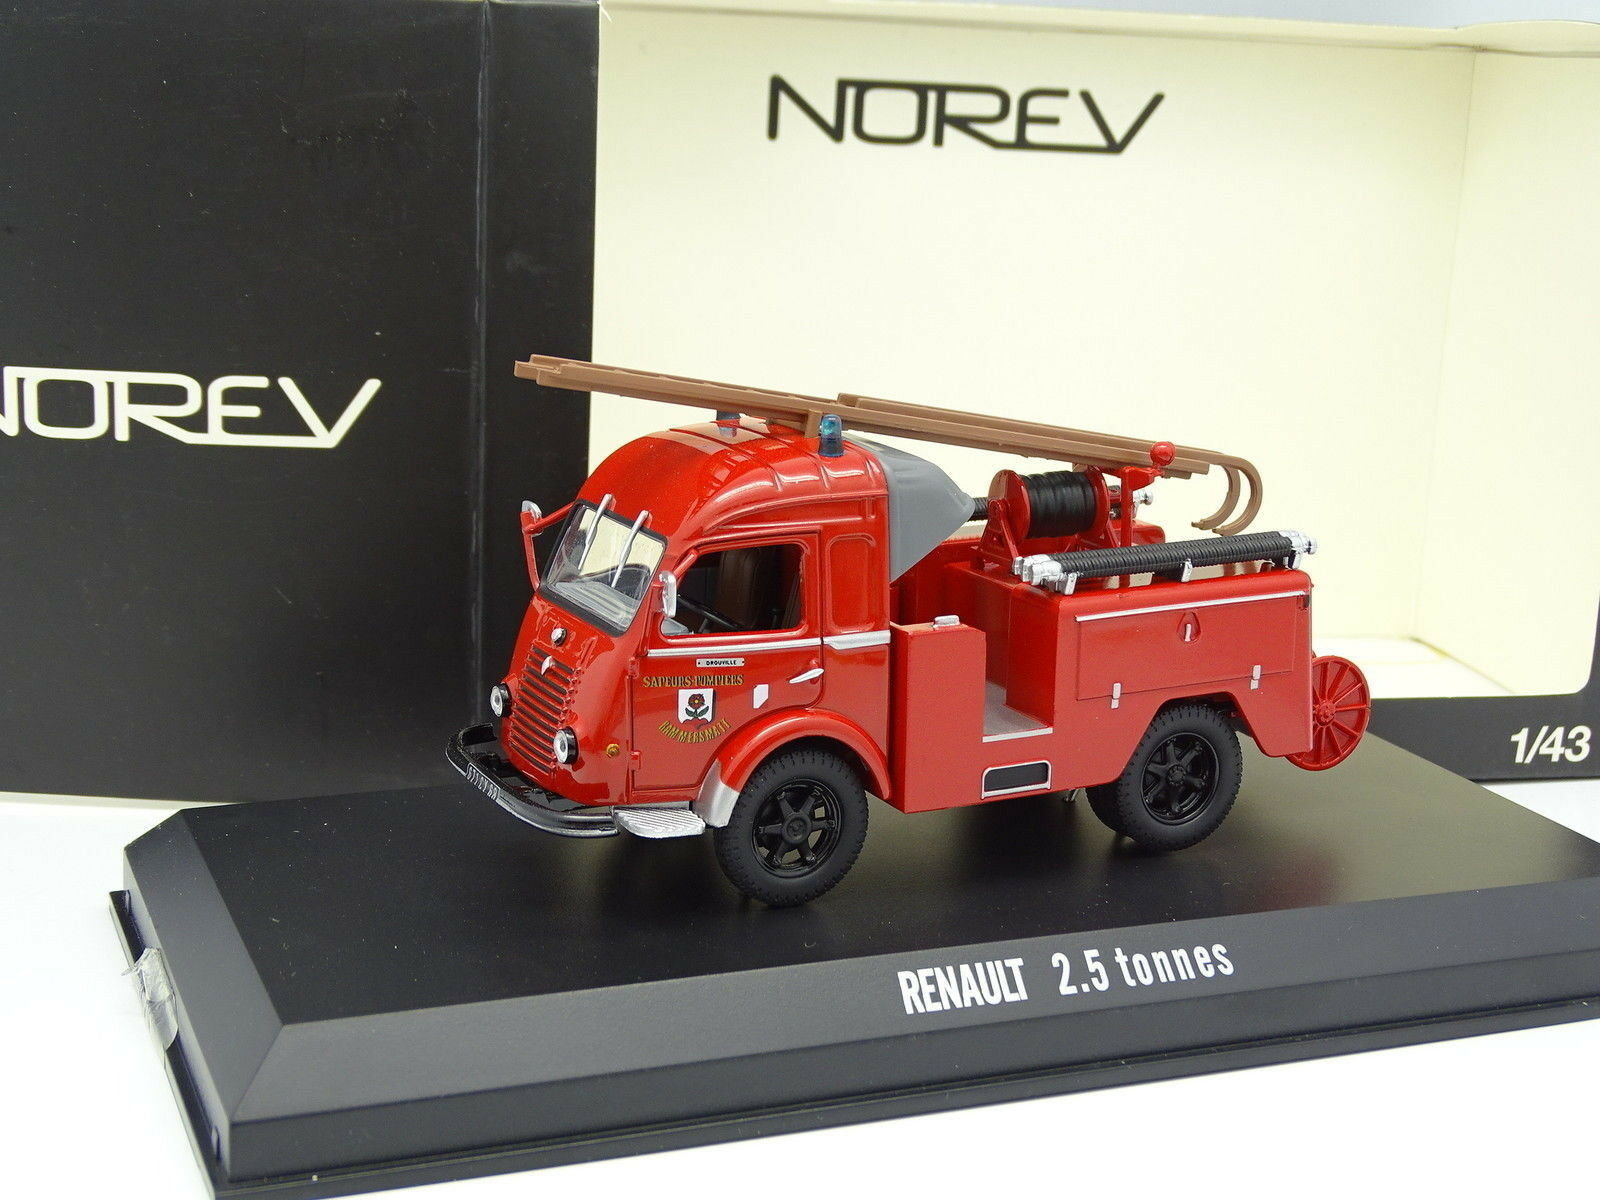 Norev 1 43 - Renault Galleon 2T5 Firefighters Drouville Rammersmatt